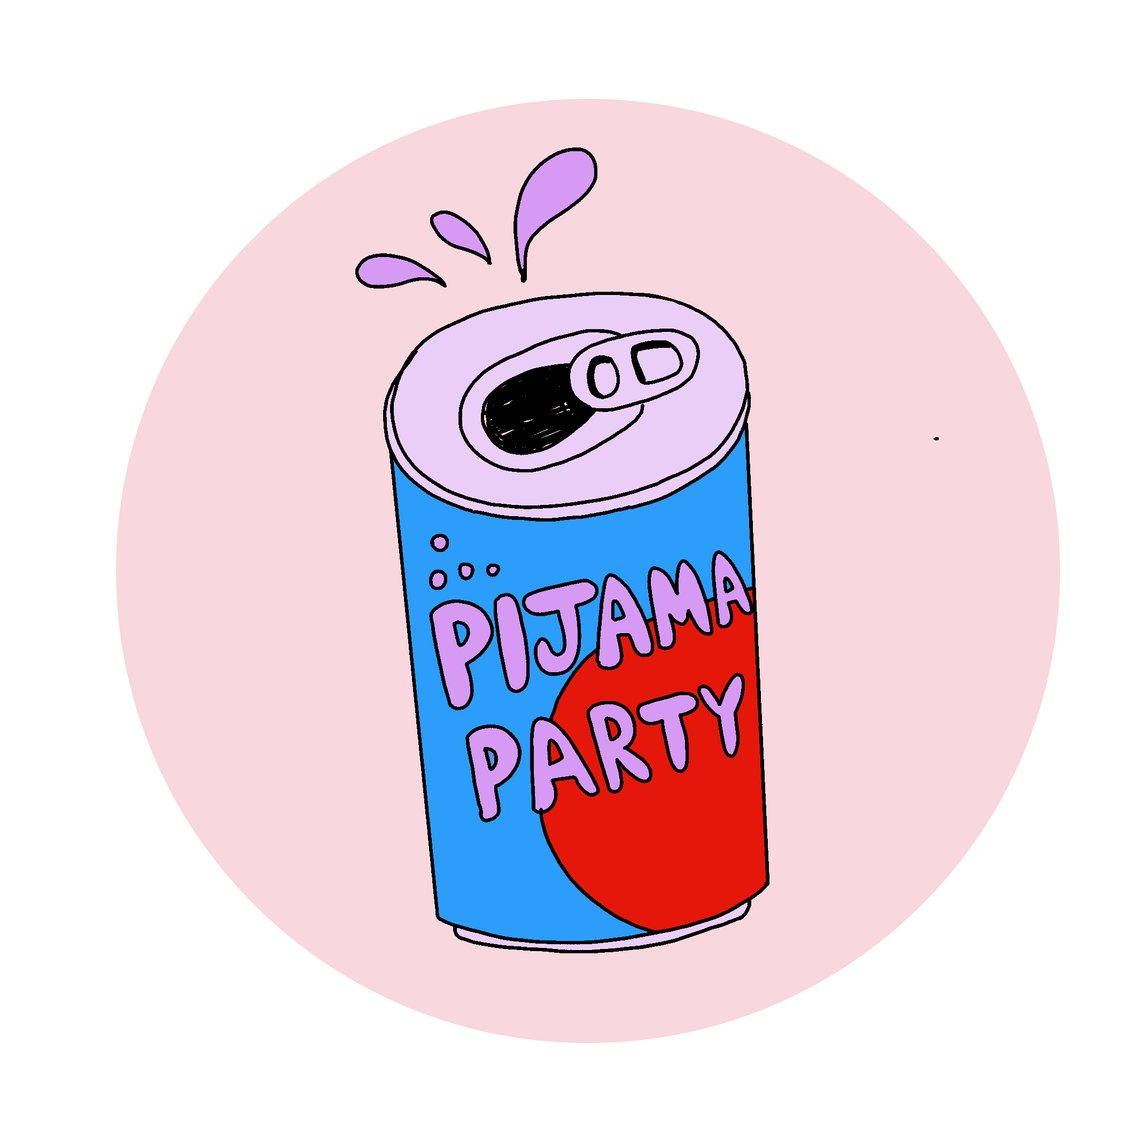 Pijama Party - Cover Image